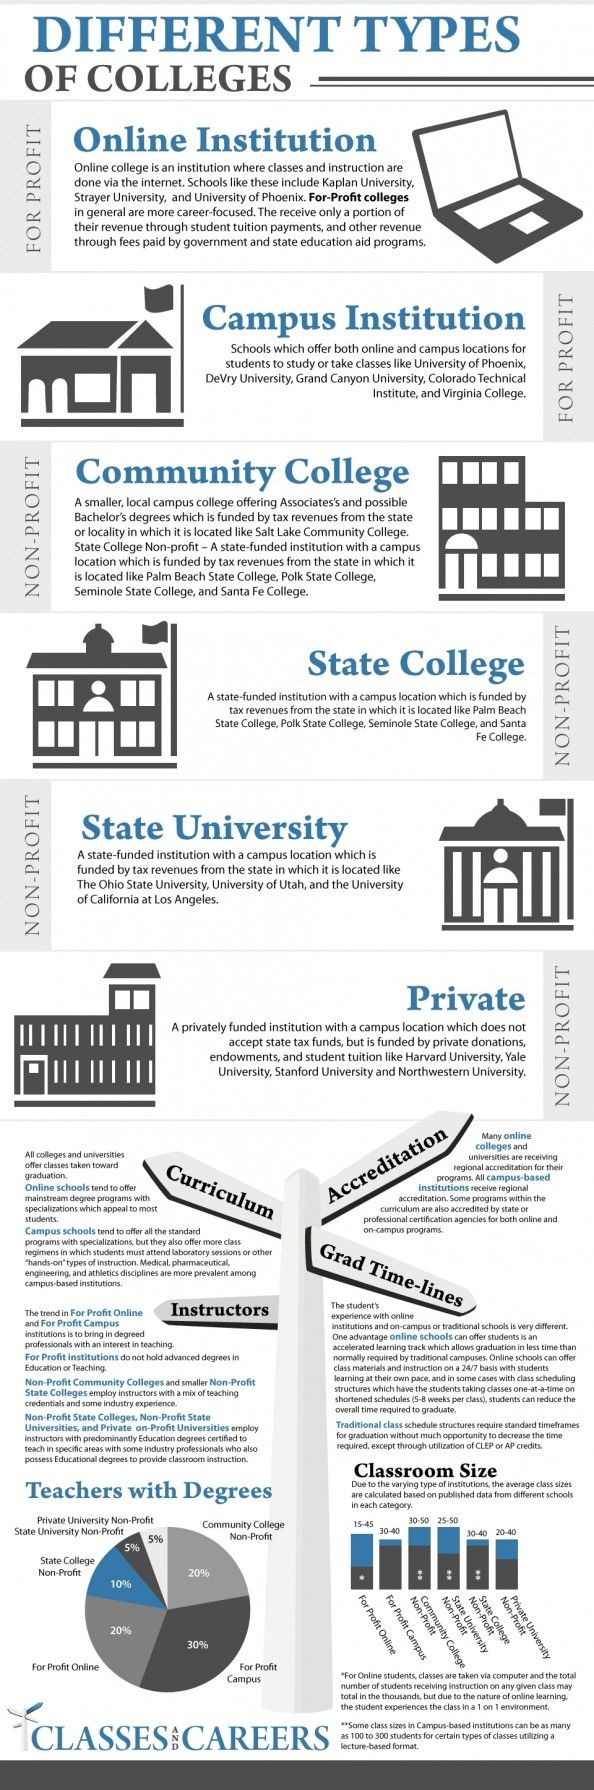 best images about college infographics sleep 17 best images about college infographics sleep deprivation colleges and college application essay